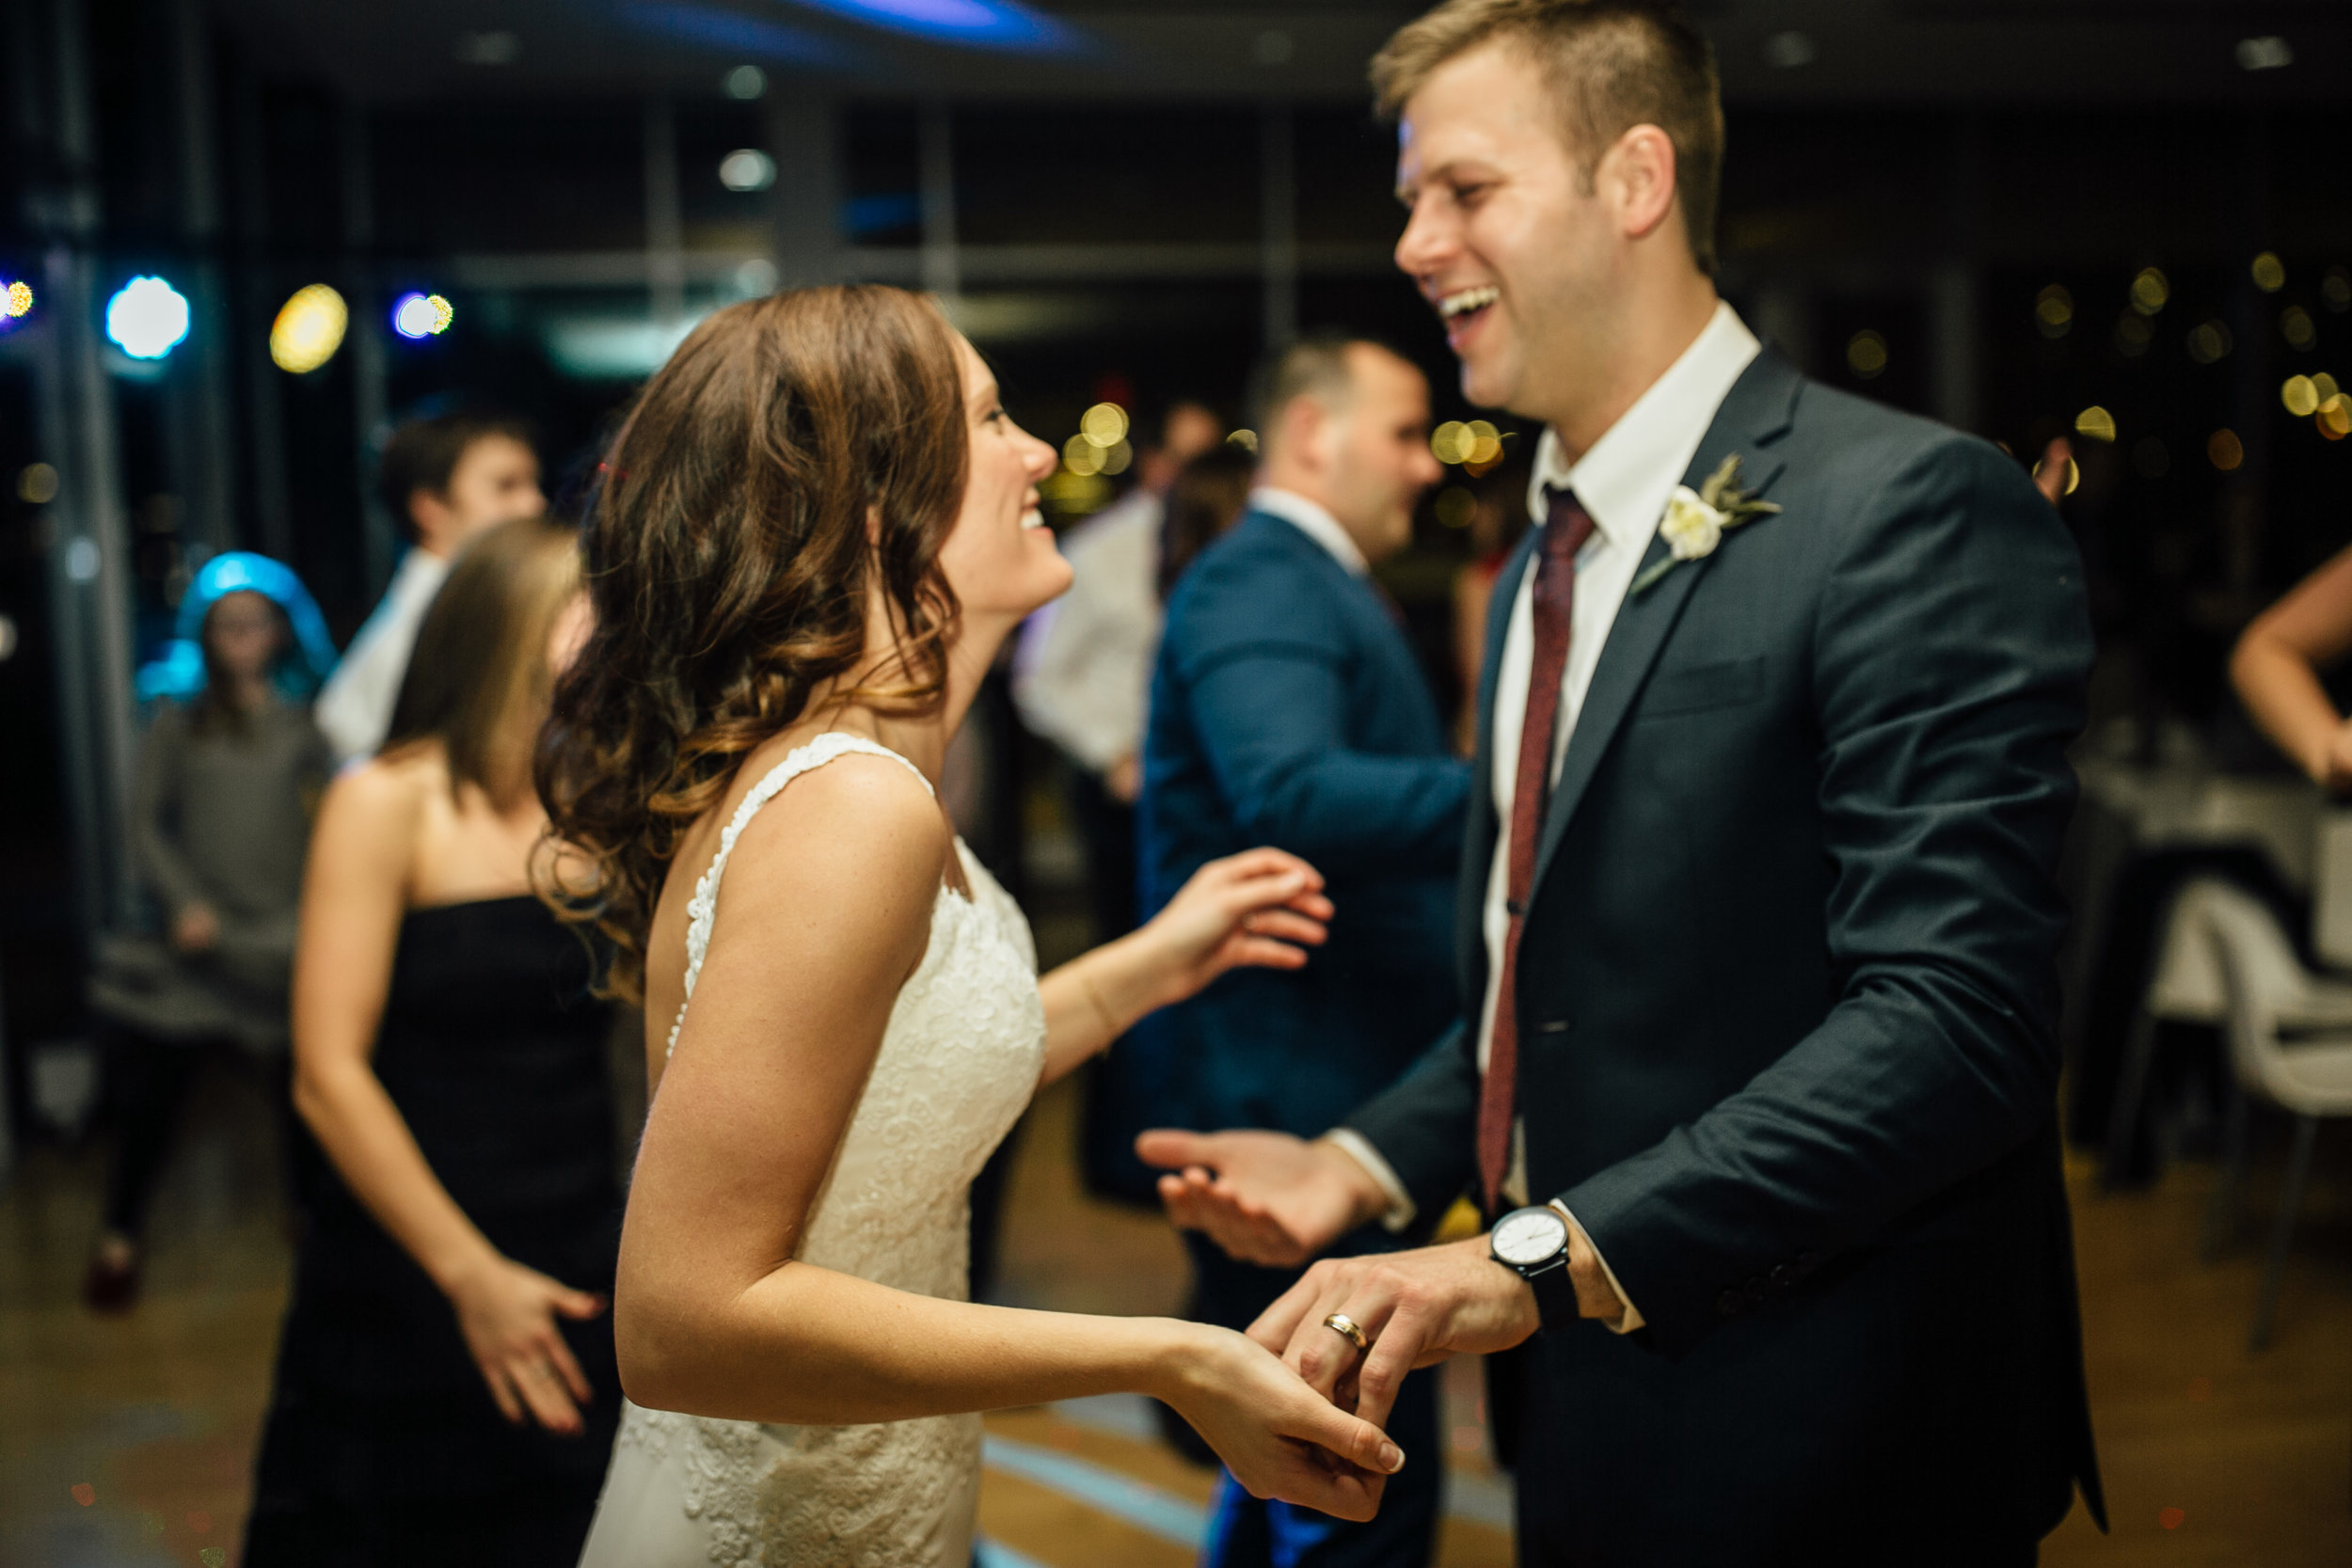 2018-1-Trisha-Craig-Reception-Grand-Rapids-Wedding-Michigan-Wedding-Photographer-185.jpg